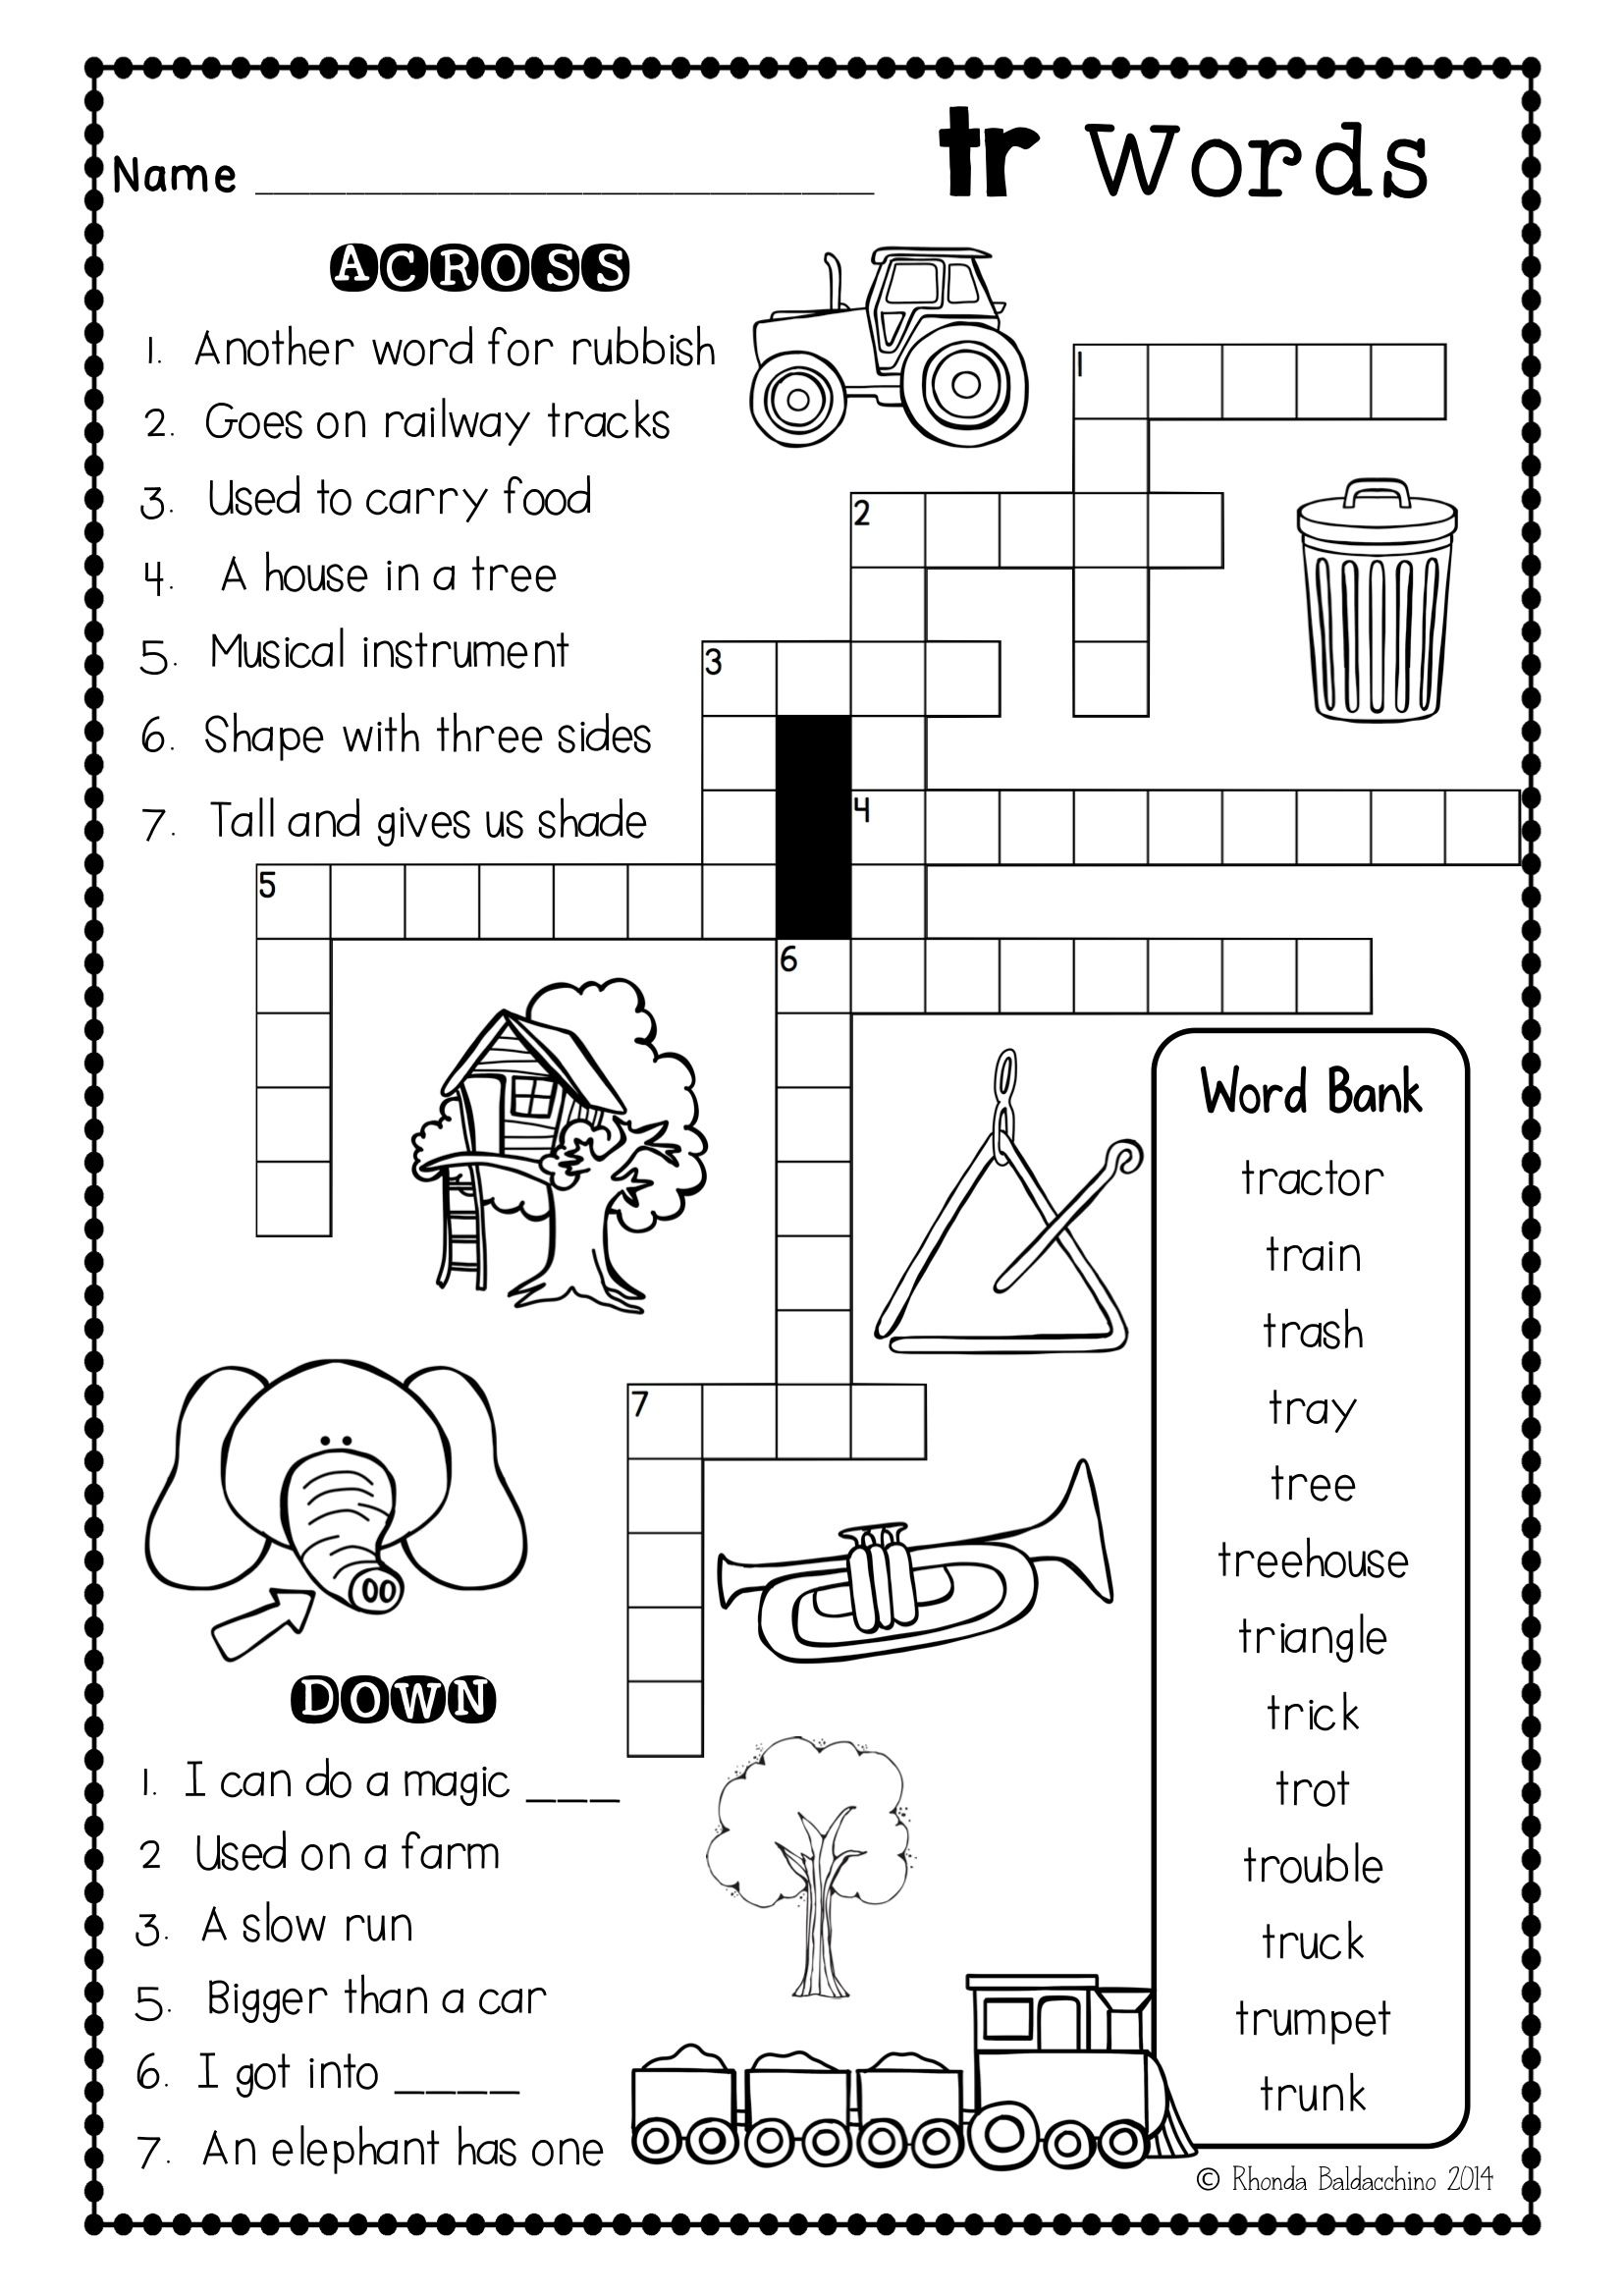 Crossword Fun Blends